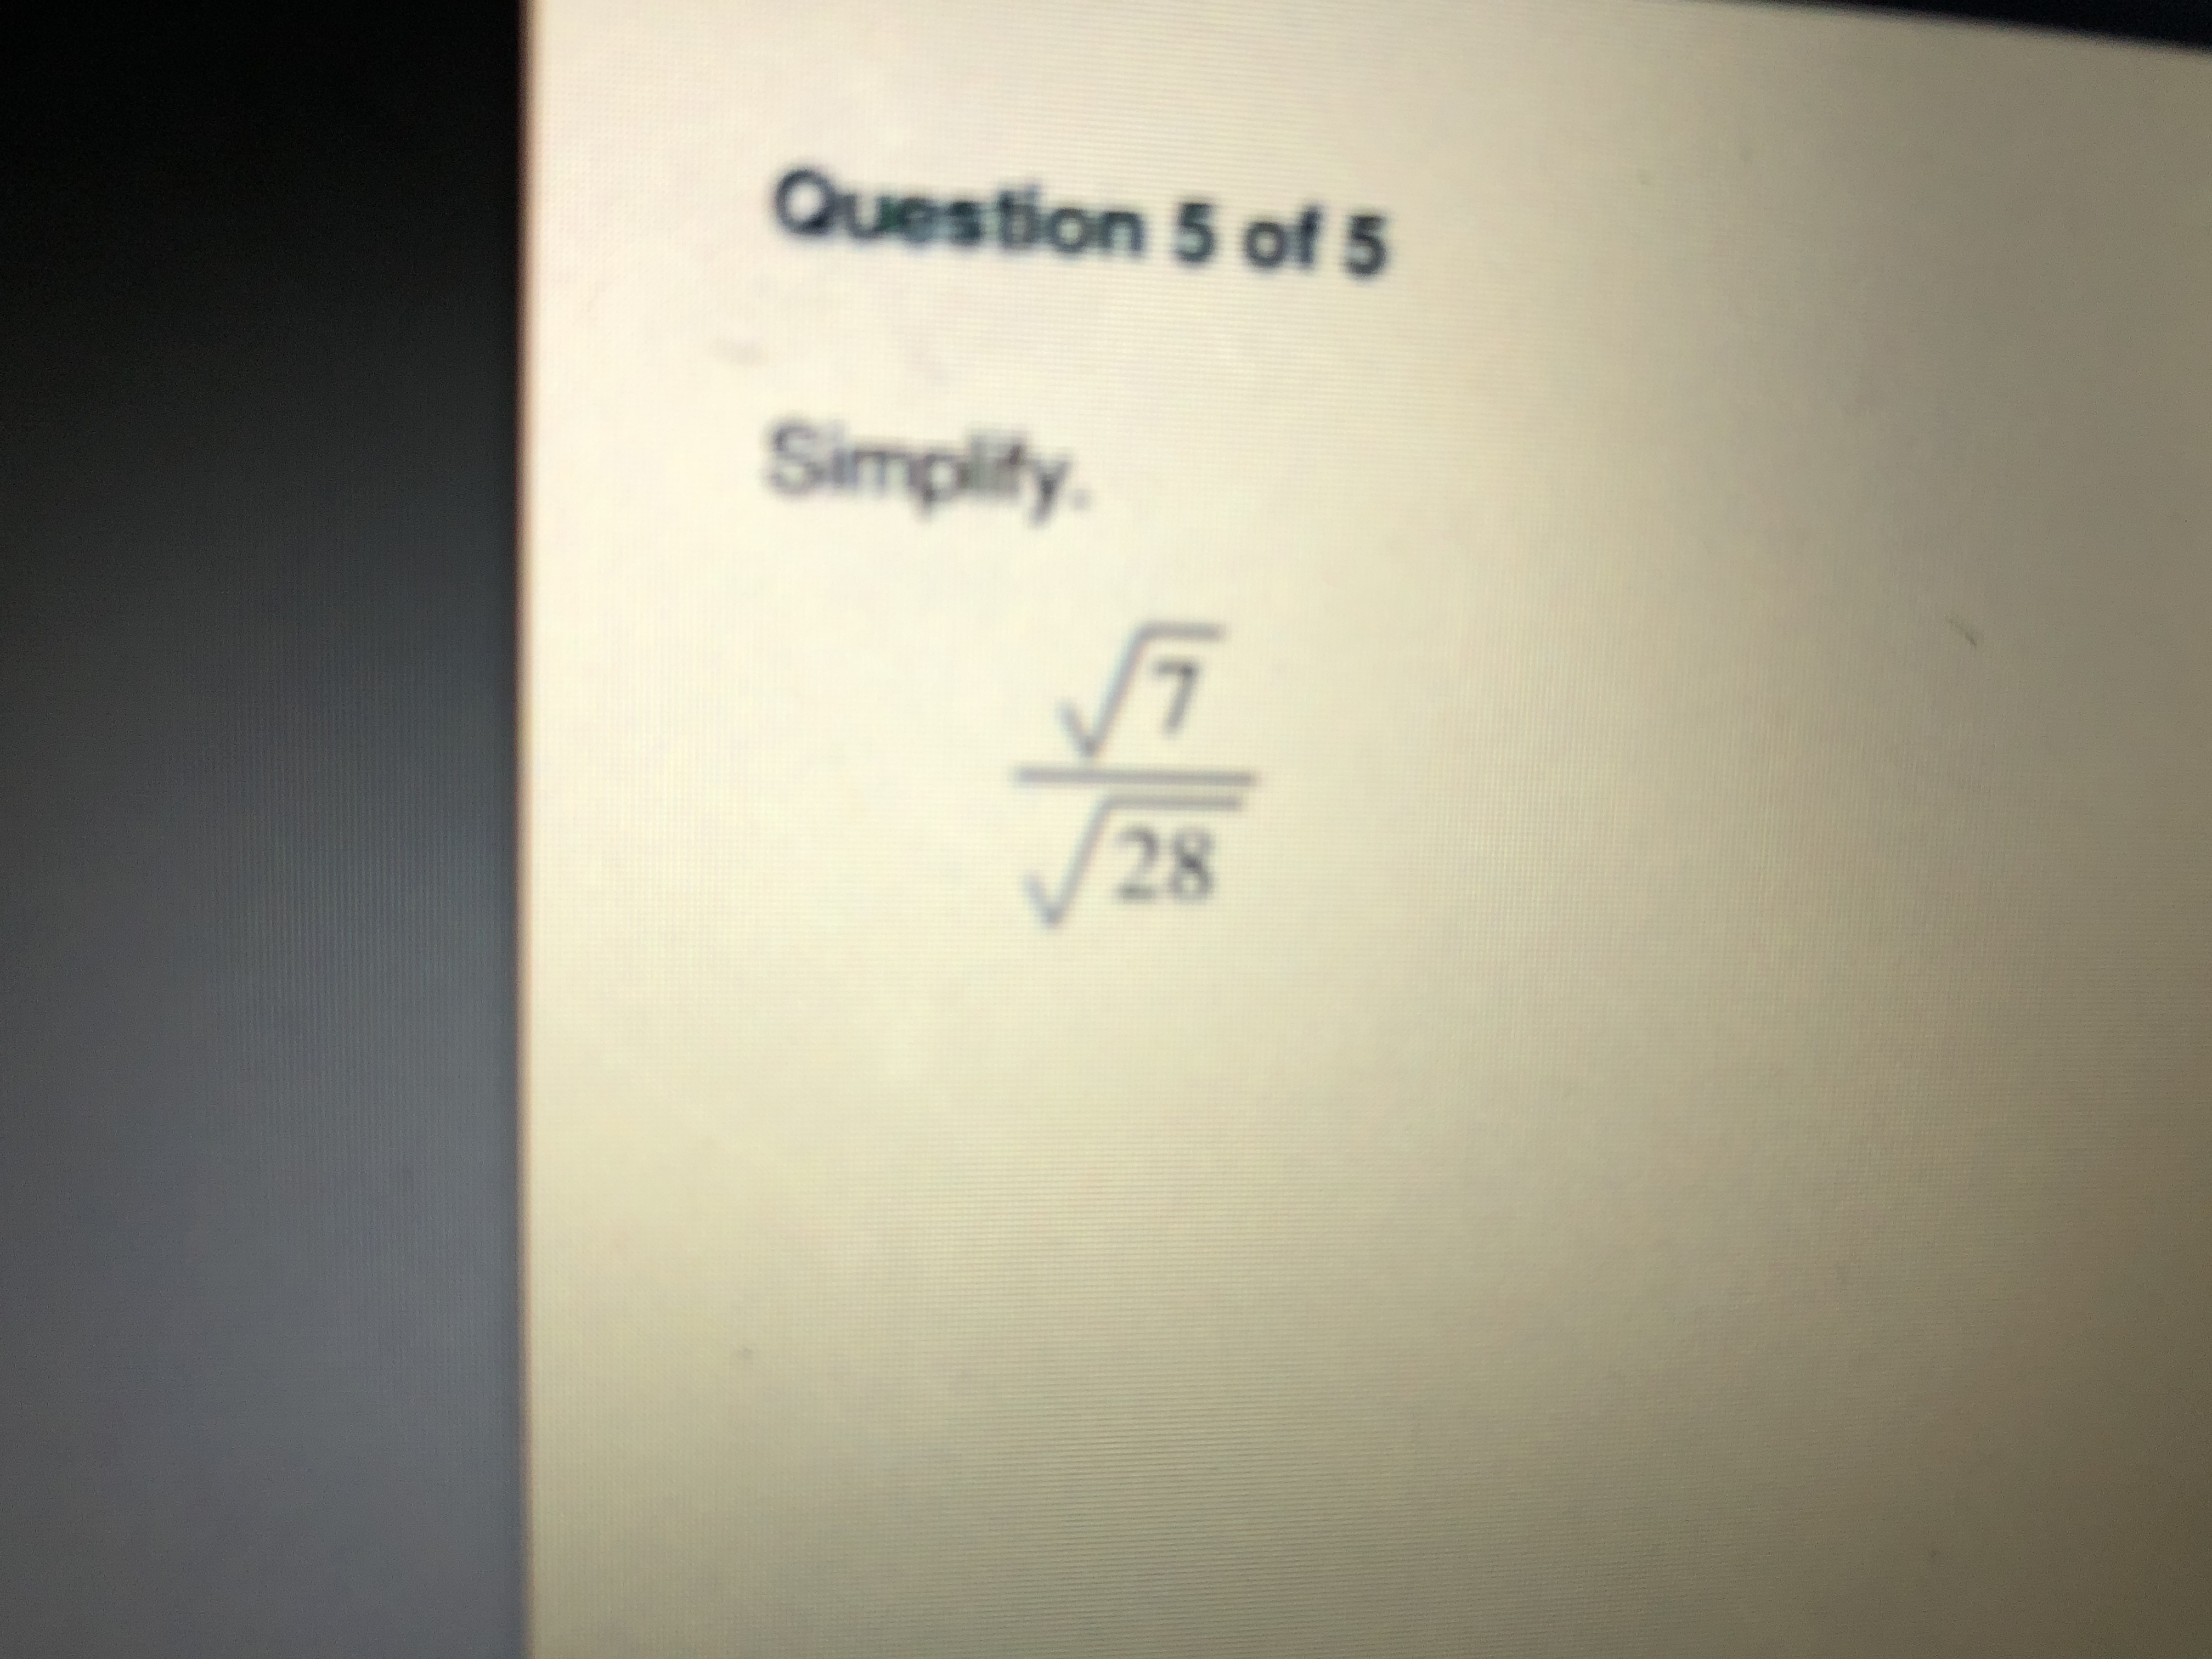 Question 5 of 5 Simplify 28